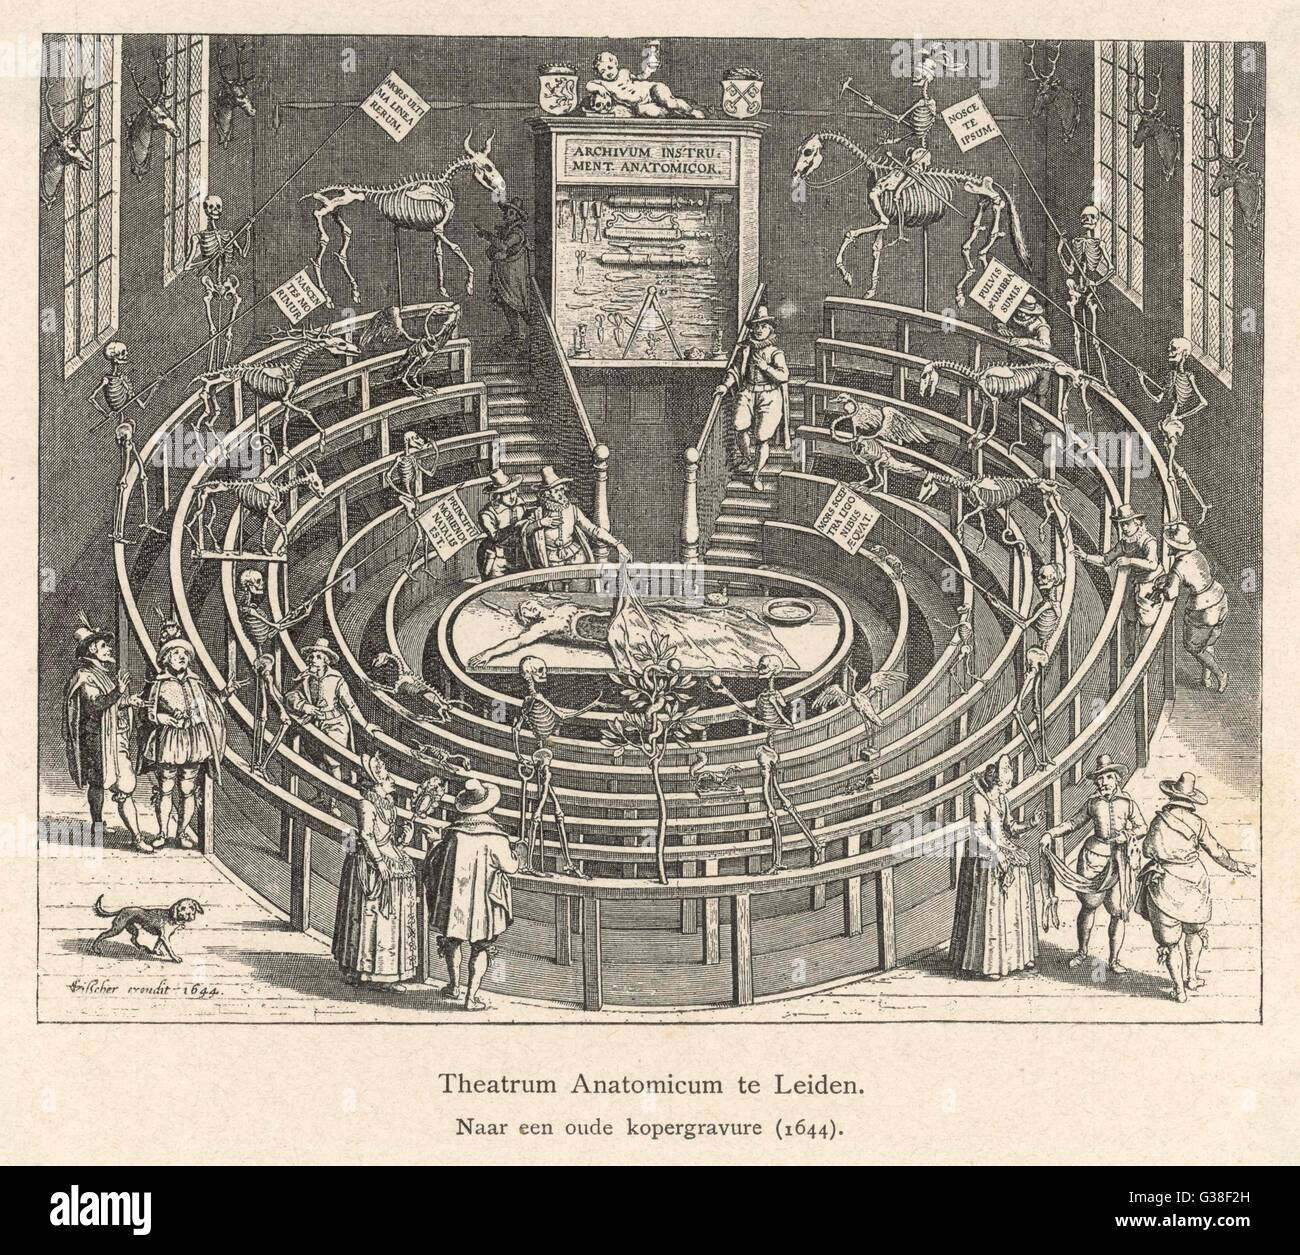 THE ANATOMY THEATRE at LEIDEN, Netherlands        Date: 1644 - Stock Image